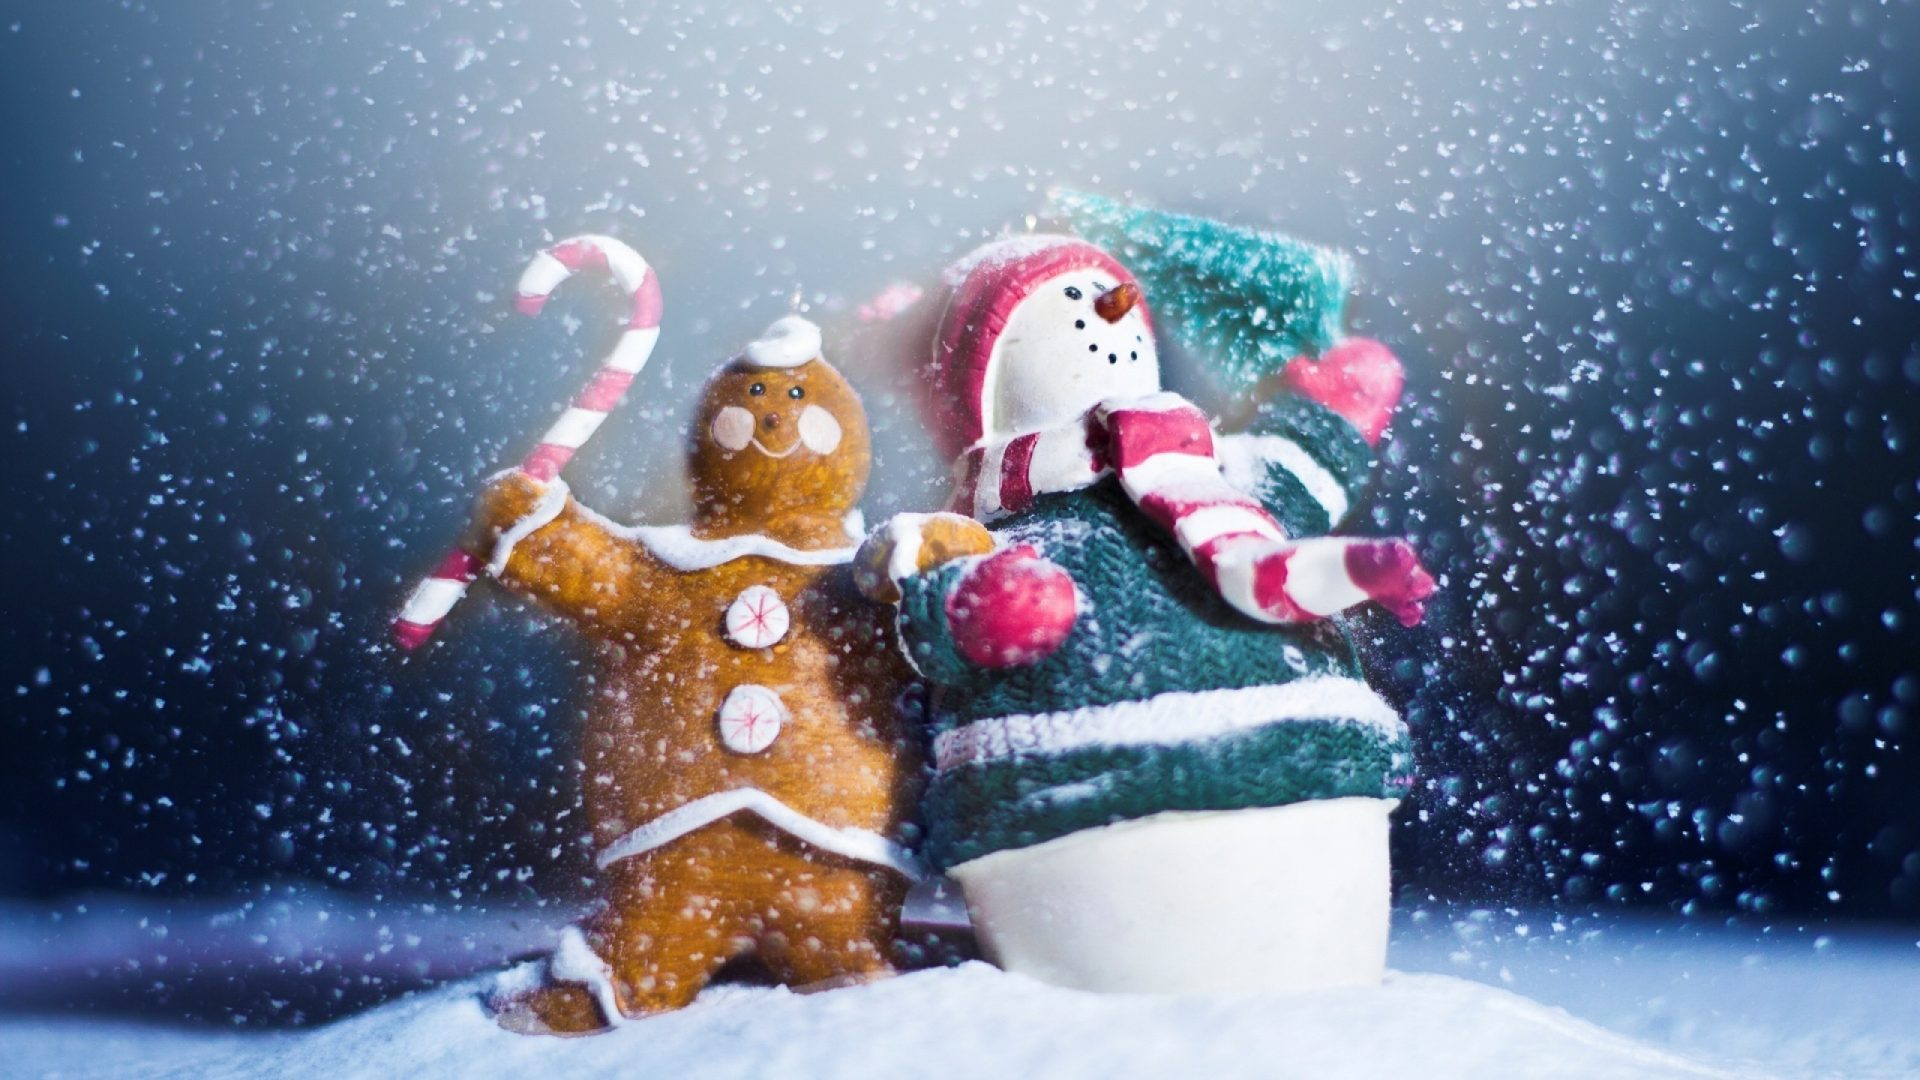 snowman_candy_cookies_holiday_91224_2560x1440